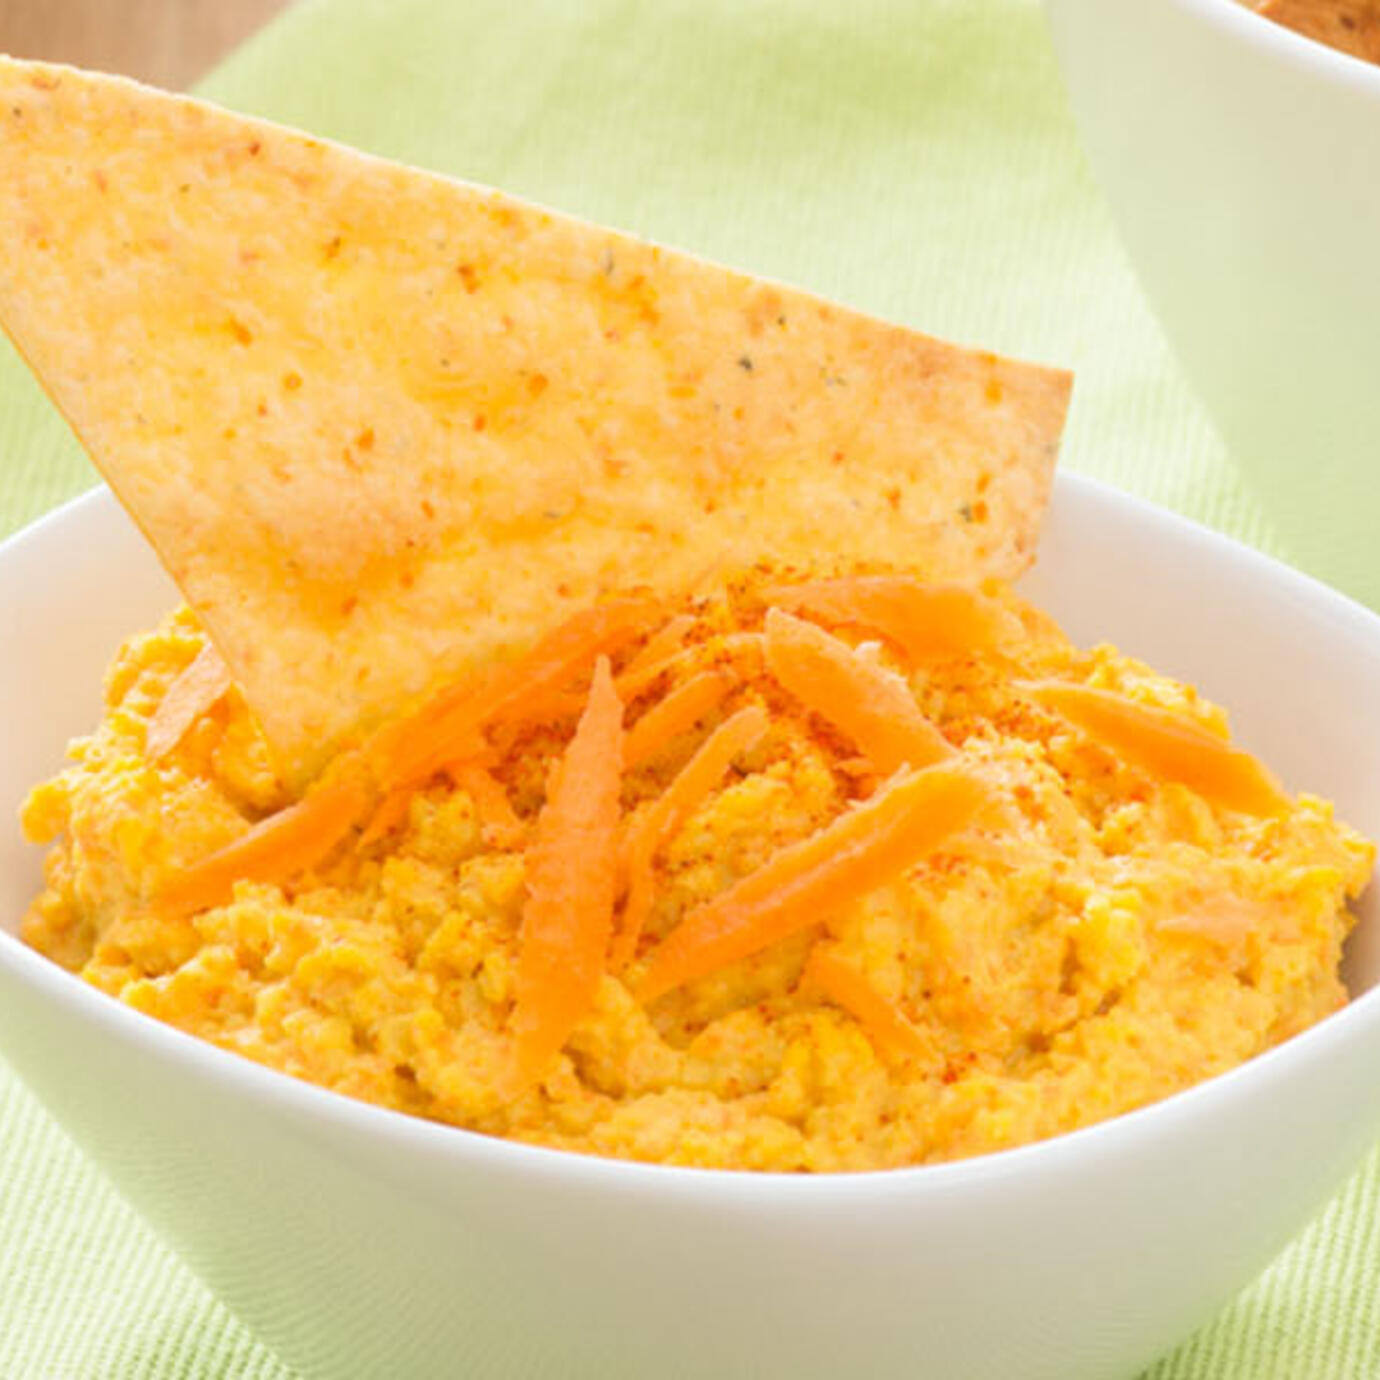 Baked Garden Vegetable Tortillas Chips with Roasted Carrot Hummus